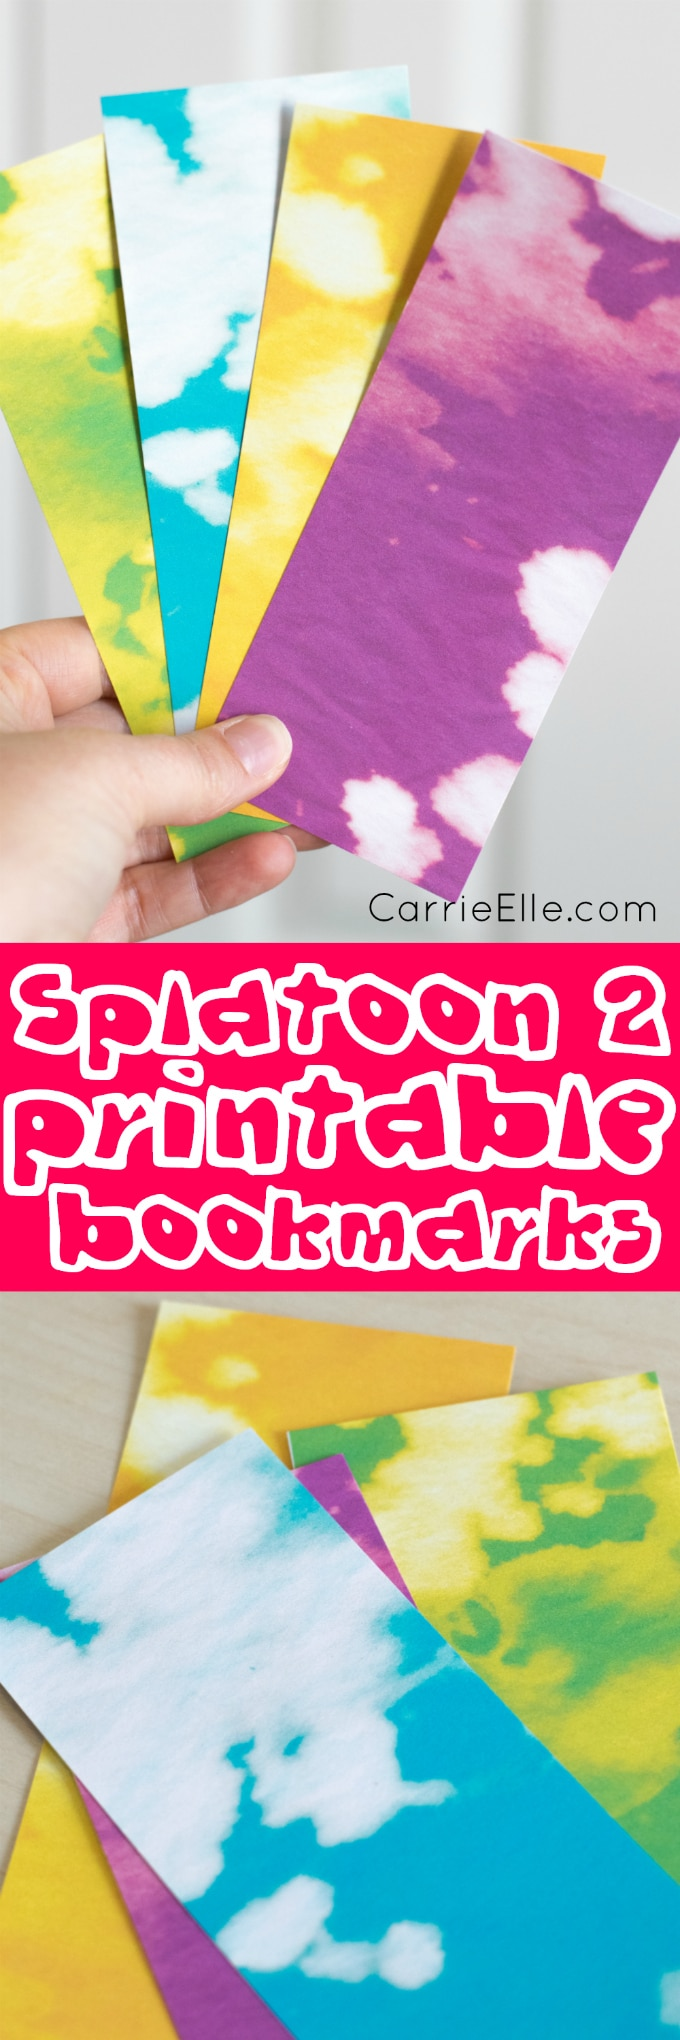 Splatoon Printable Bookmarks